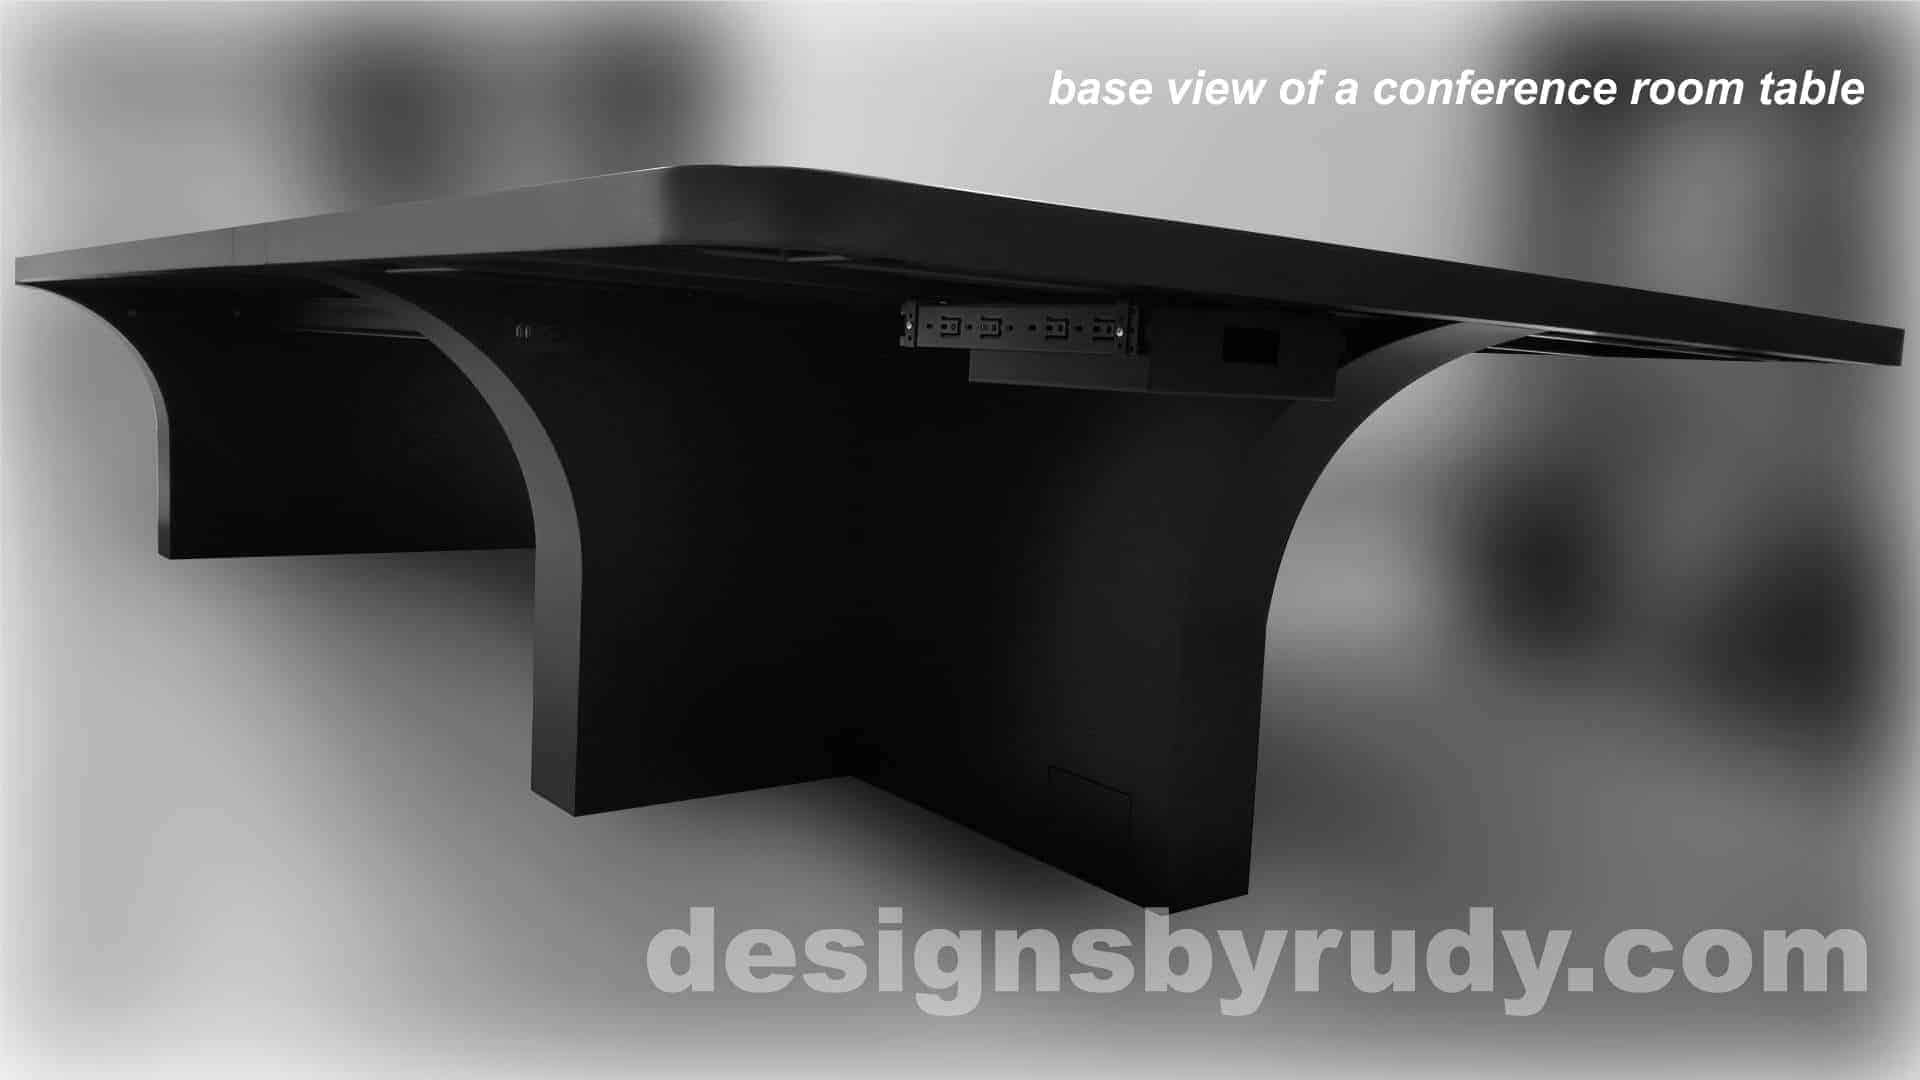 3 Concrete and Steel Conference Room Table for Markforged finished bottom view Designs by Rudy